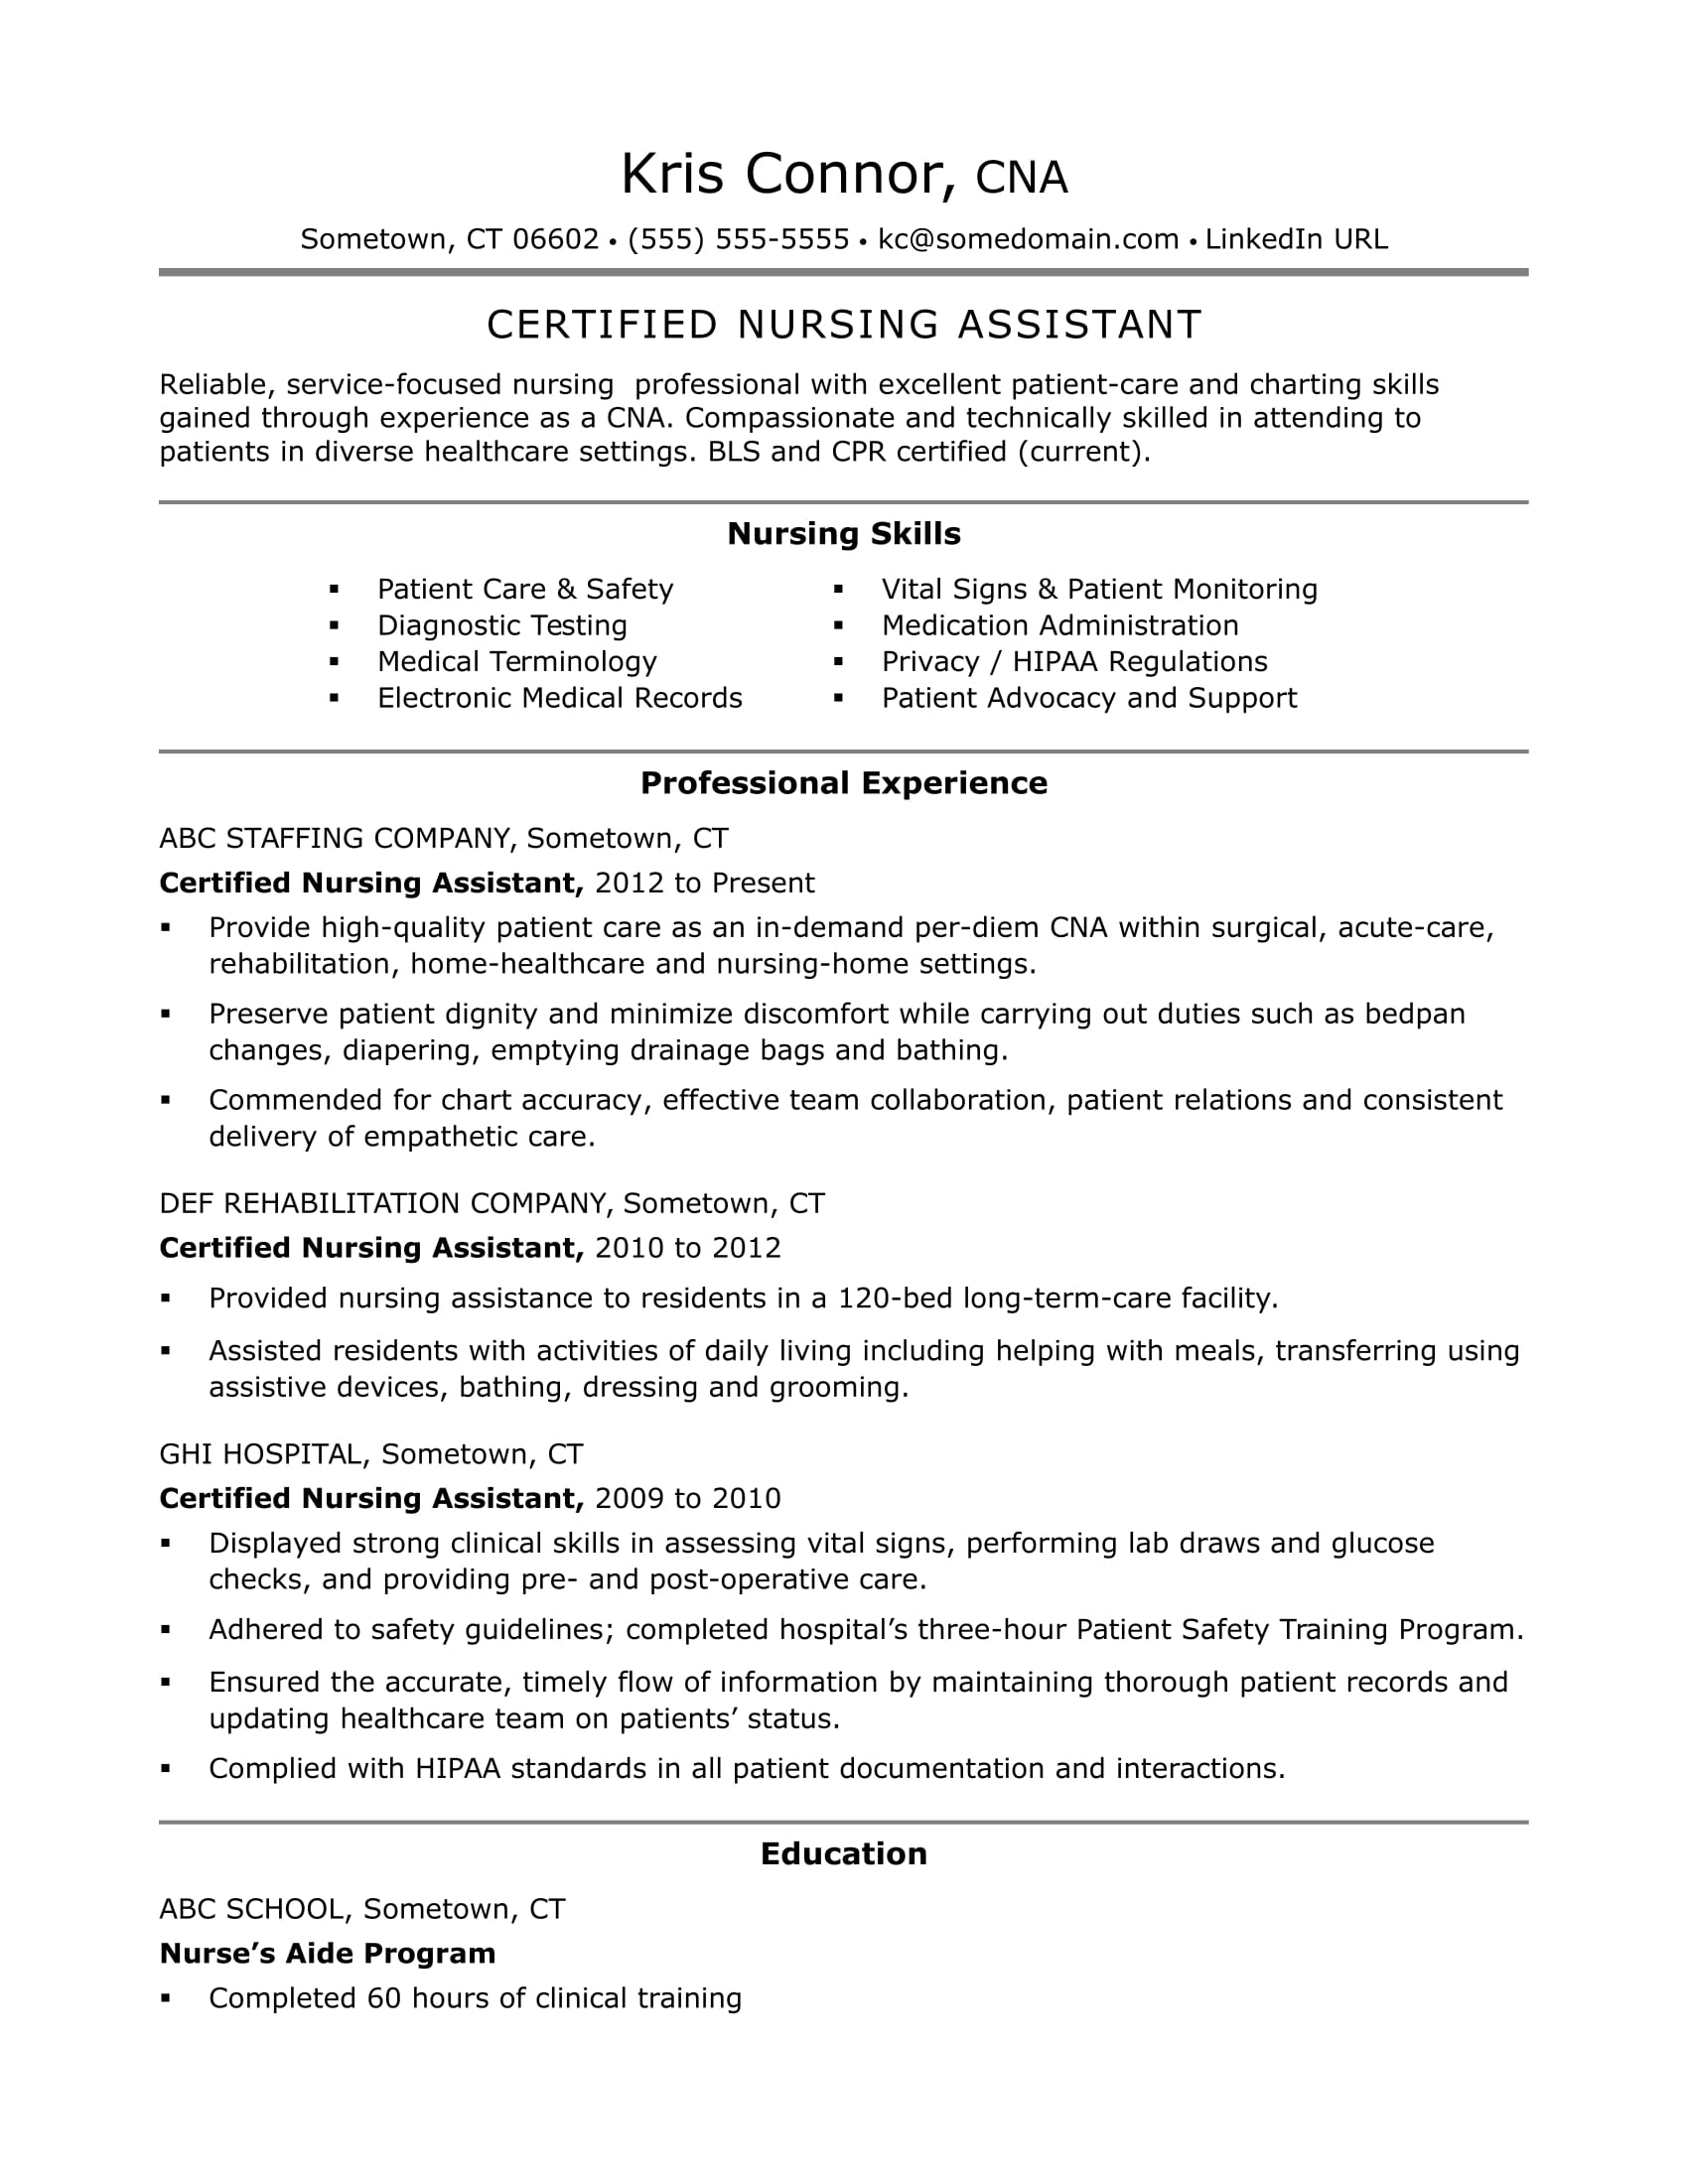 Cna Resume Examples: Skills For Cnas | Monster Inside Assisted Living Rules And Regulations Template